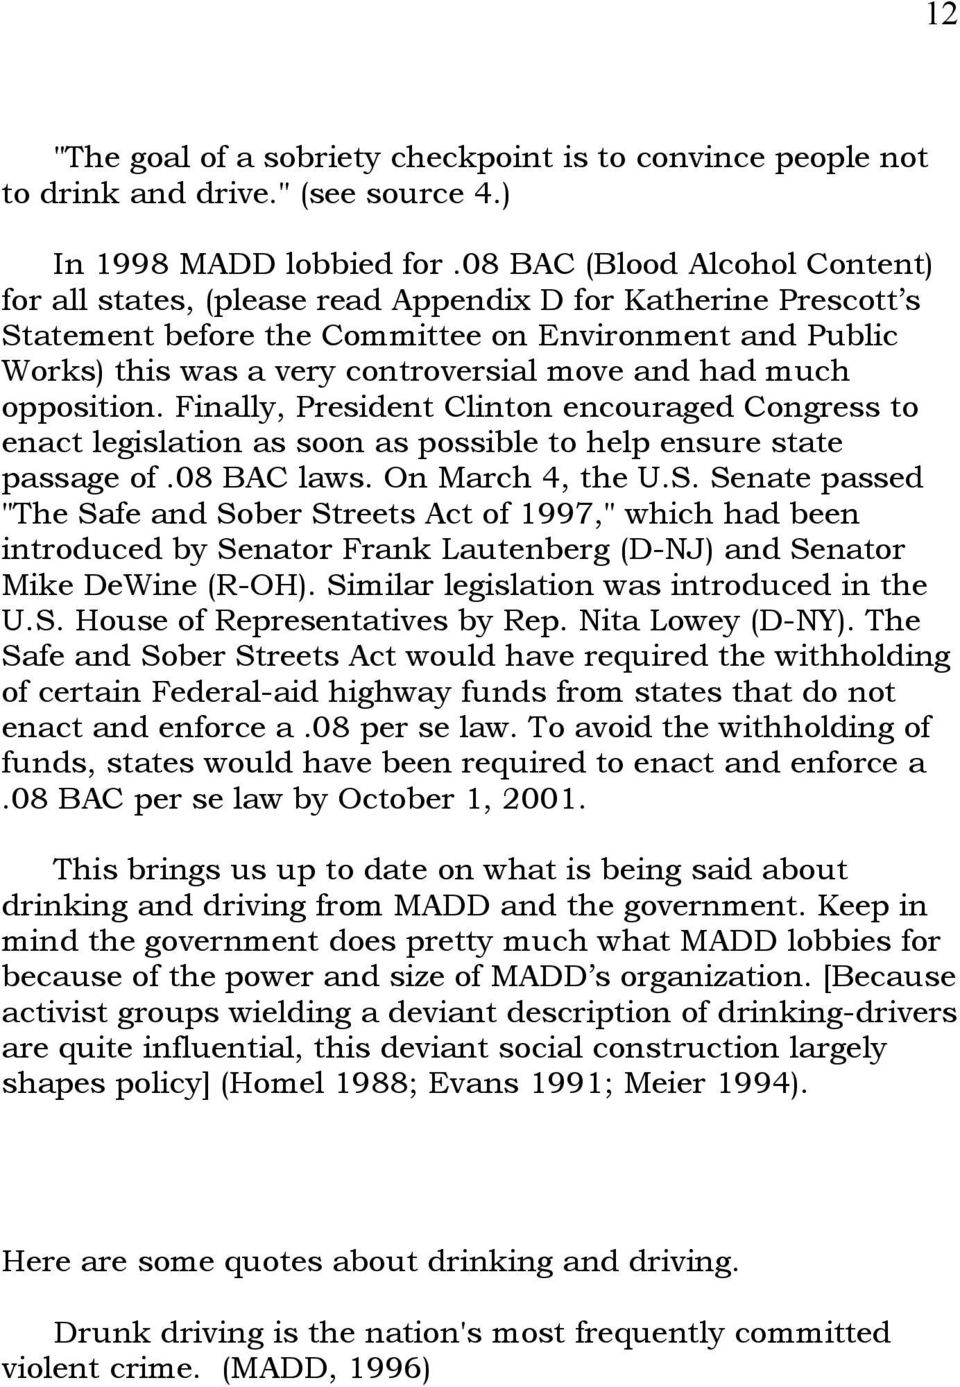 had much opposition. Finally, President Clinton encouraged Congress to enact legislation as soon as possible to help ensure state passage of.08 BAC laws. On March 4, the U.S.